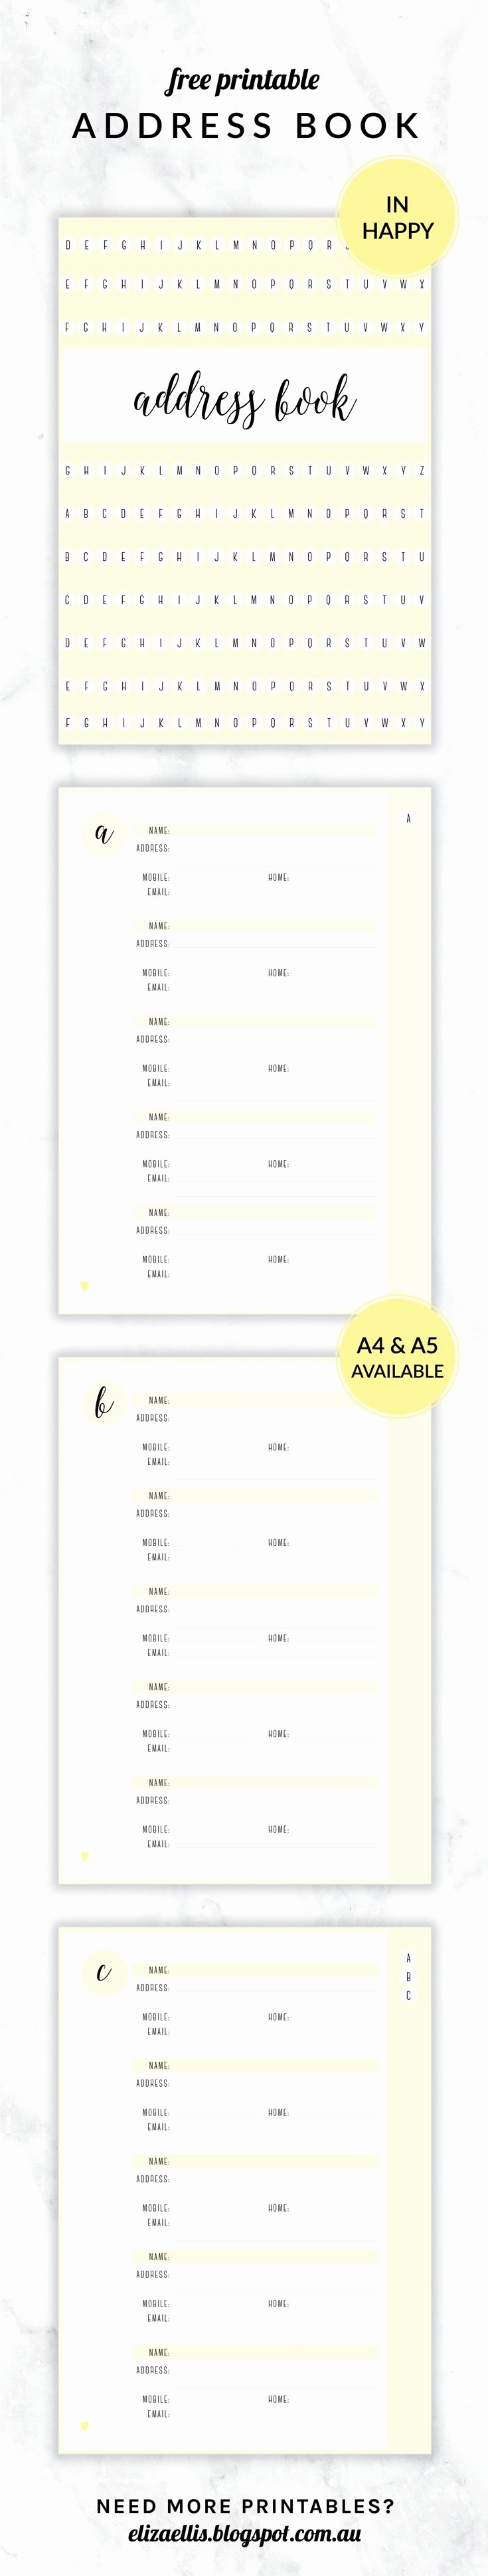 Best Free Online Address Book Luxury 20 Best Images About Printables On Pinterest